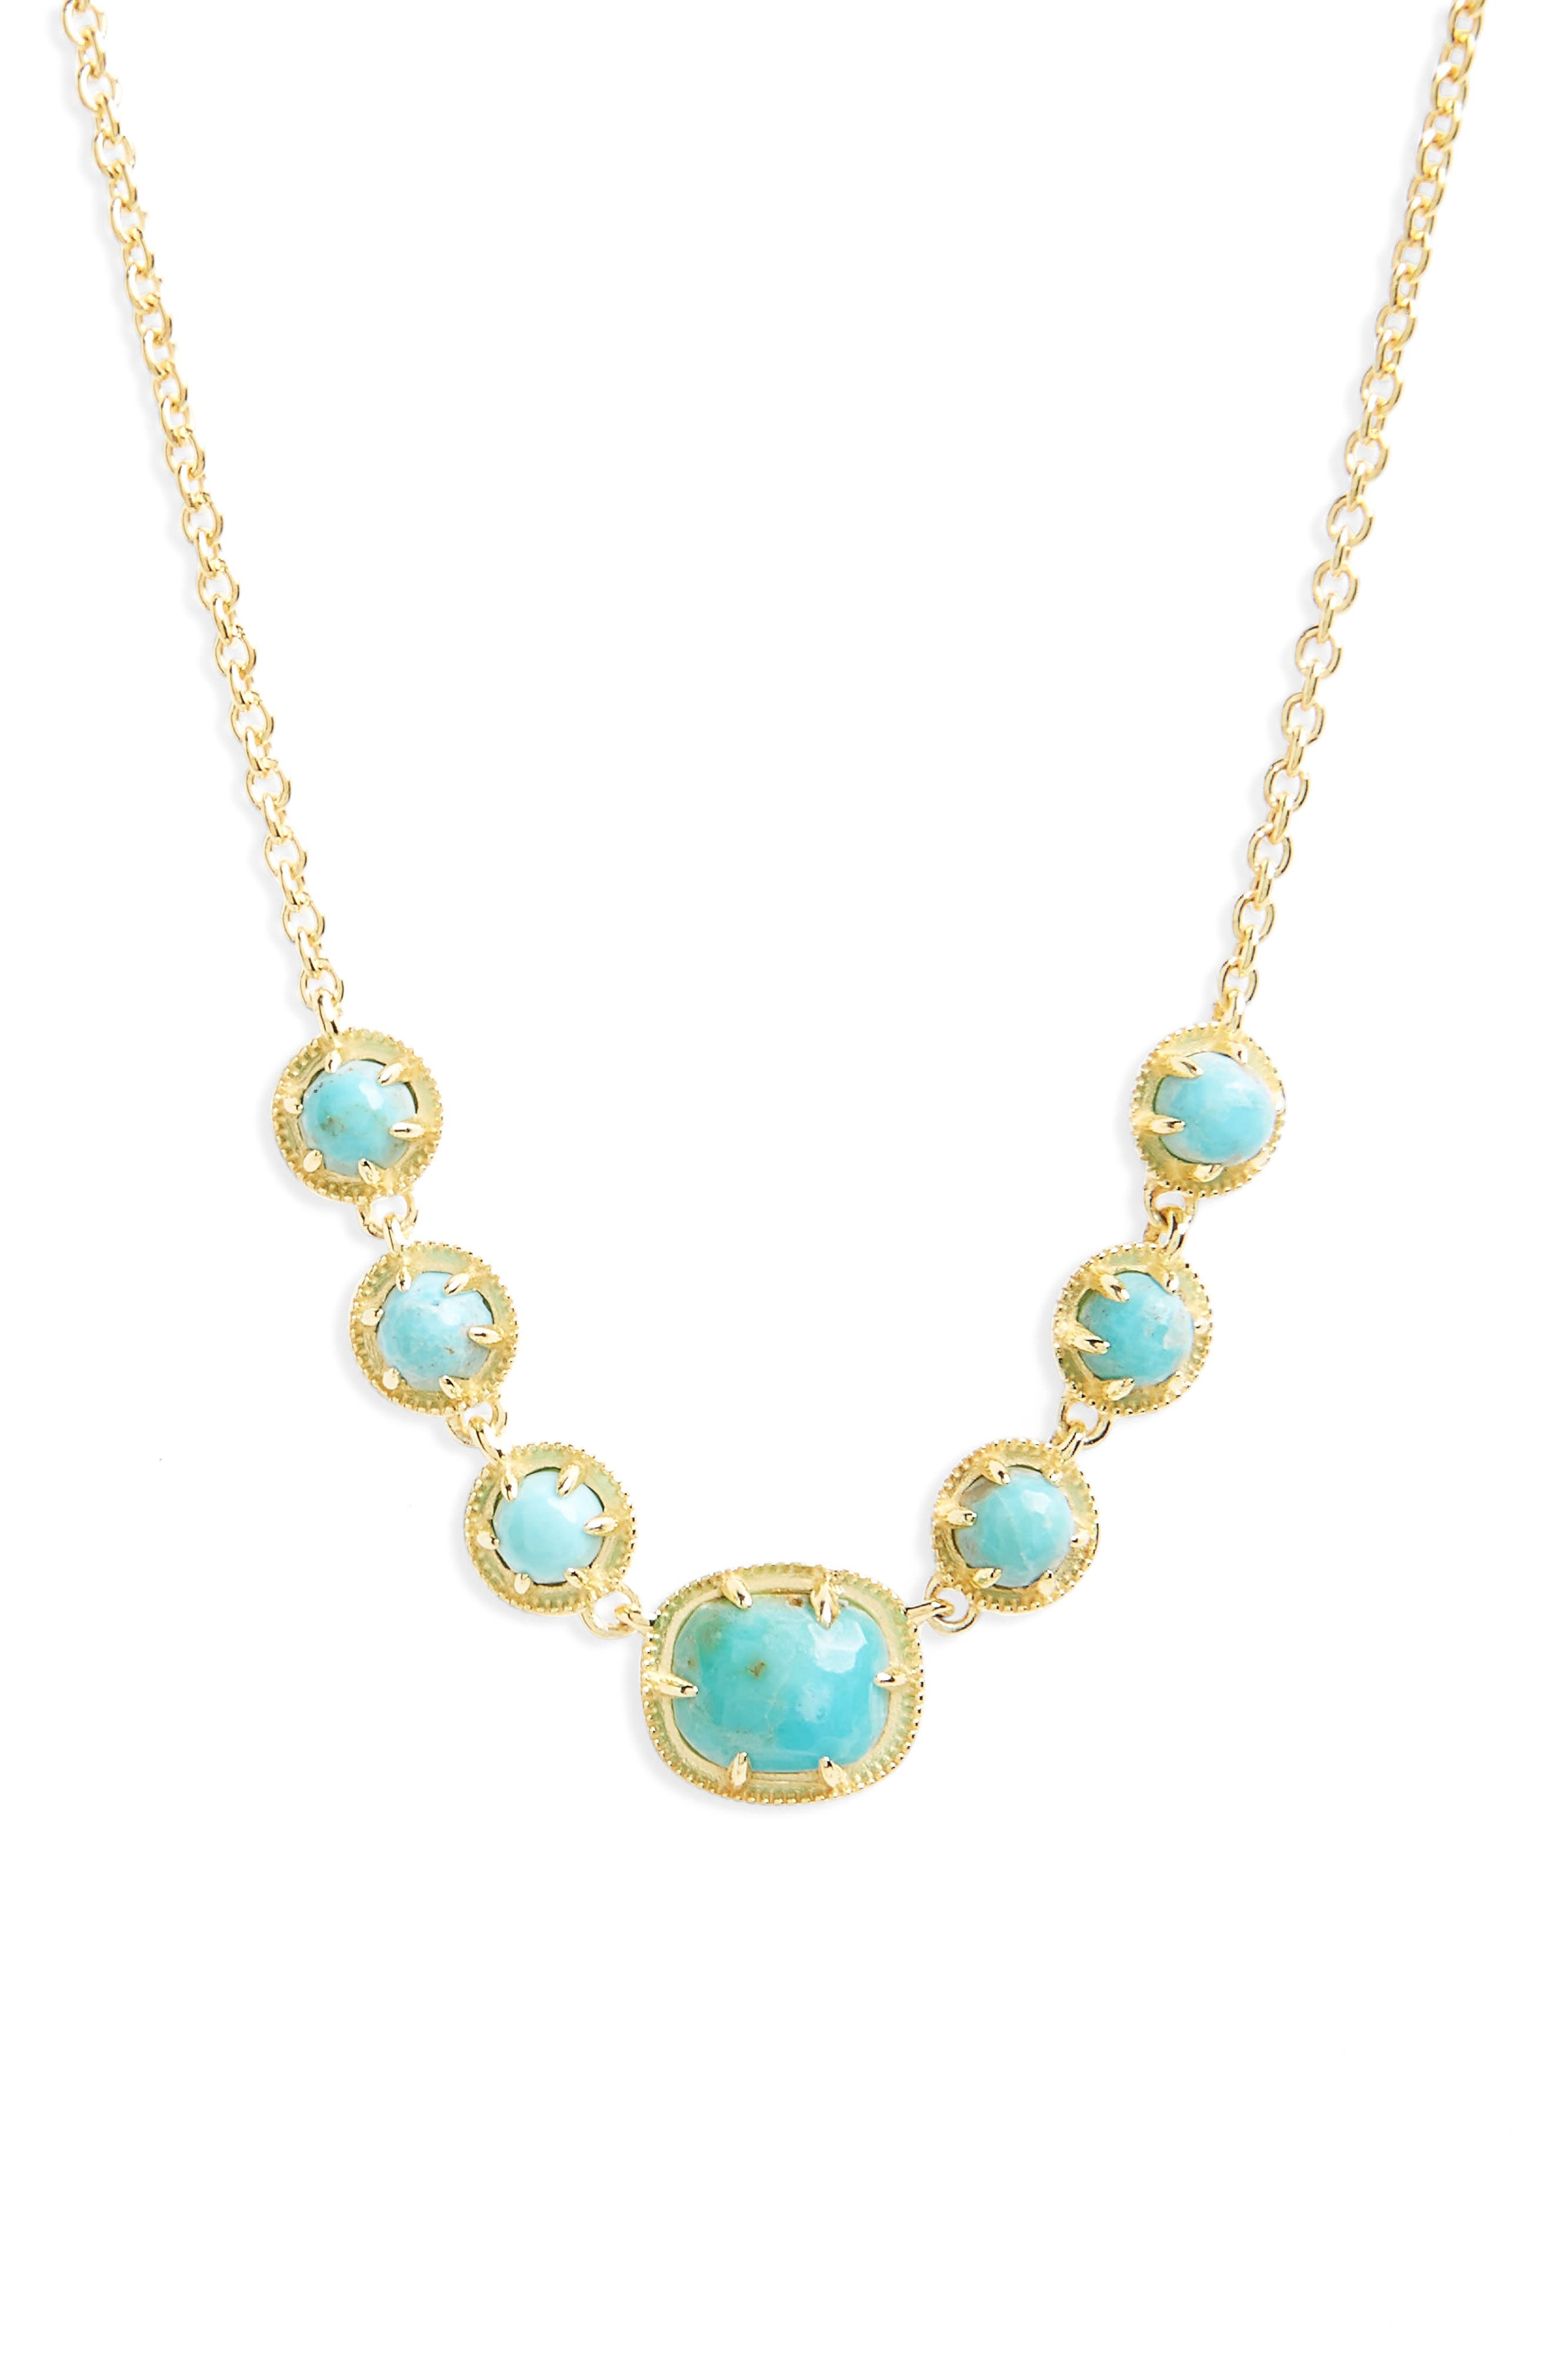 Semiprecious Stone Collar Necklace,                             Main thumbnail 1, color,                             Turquoise/ Gold